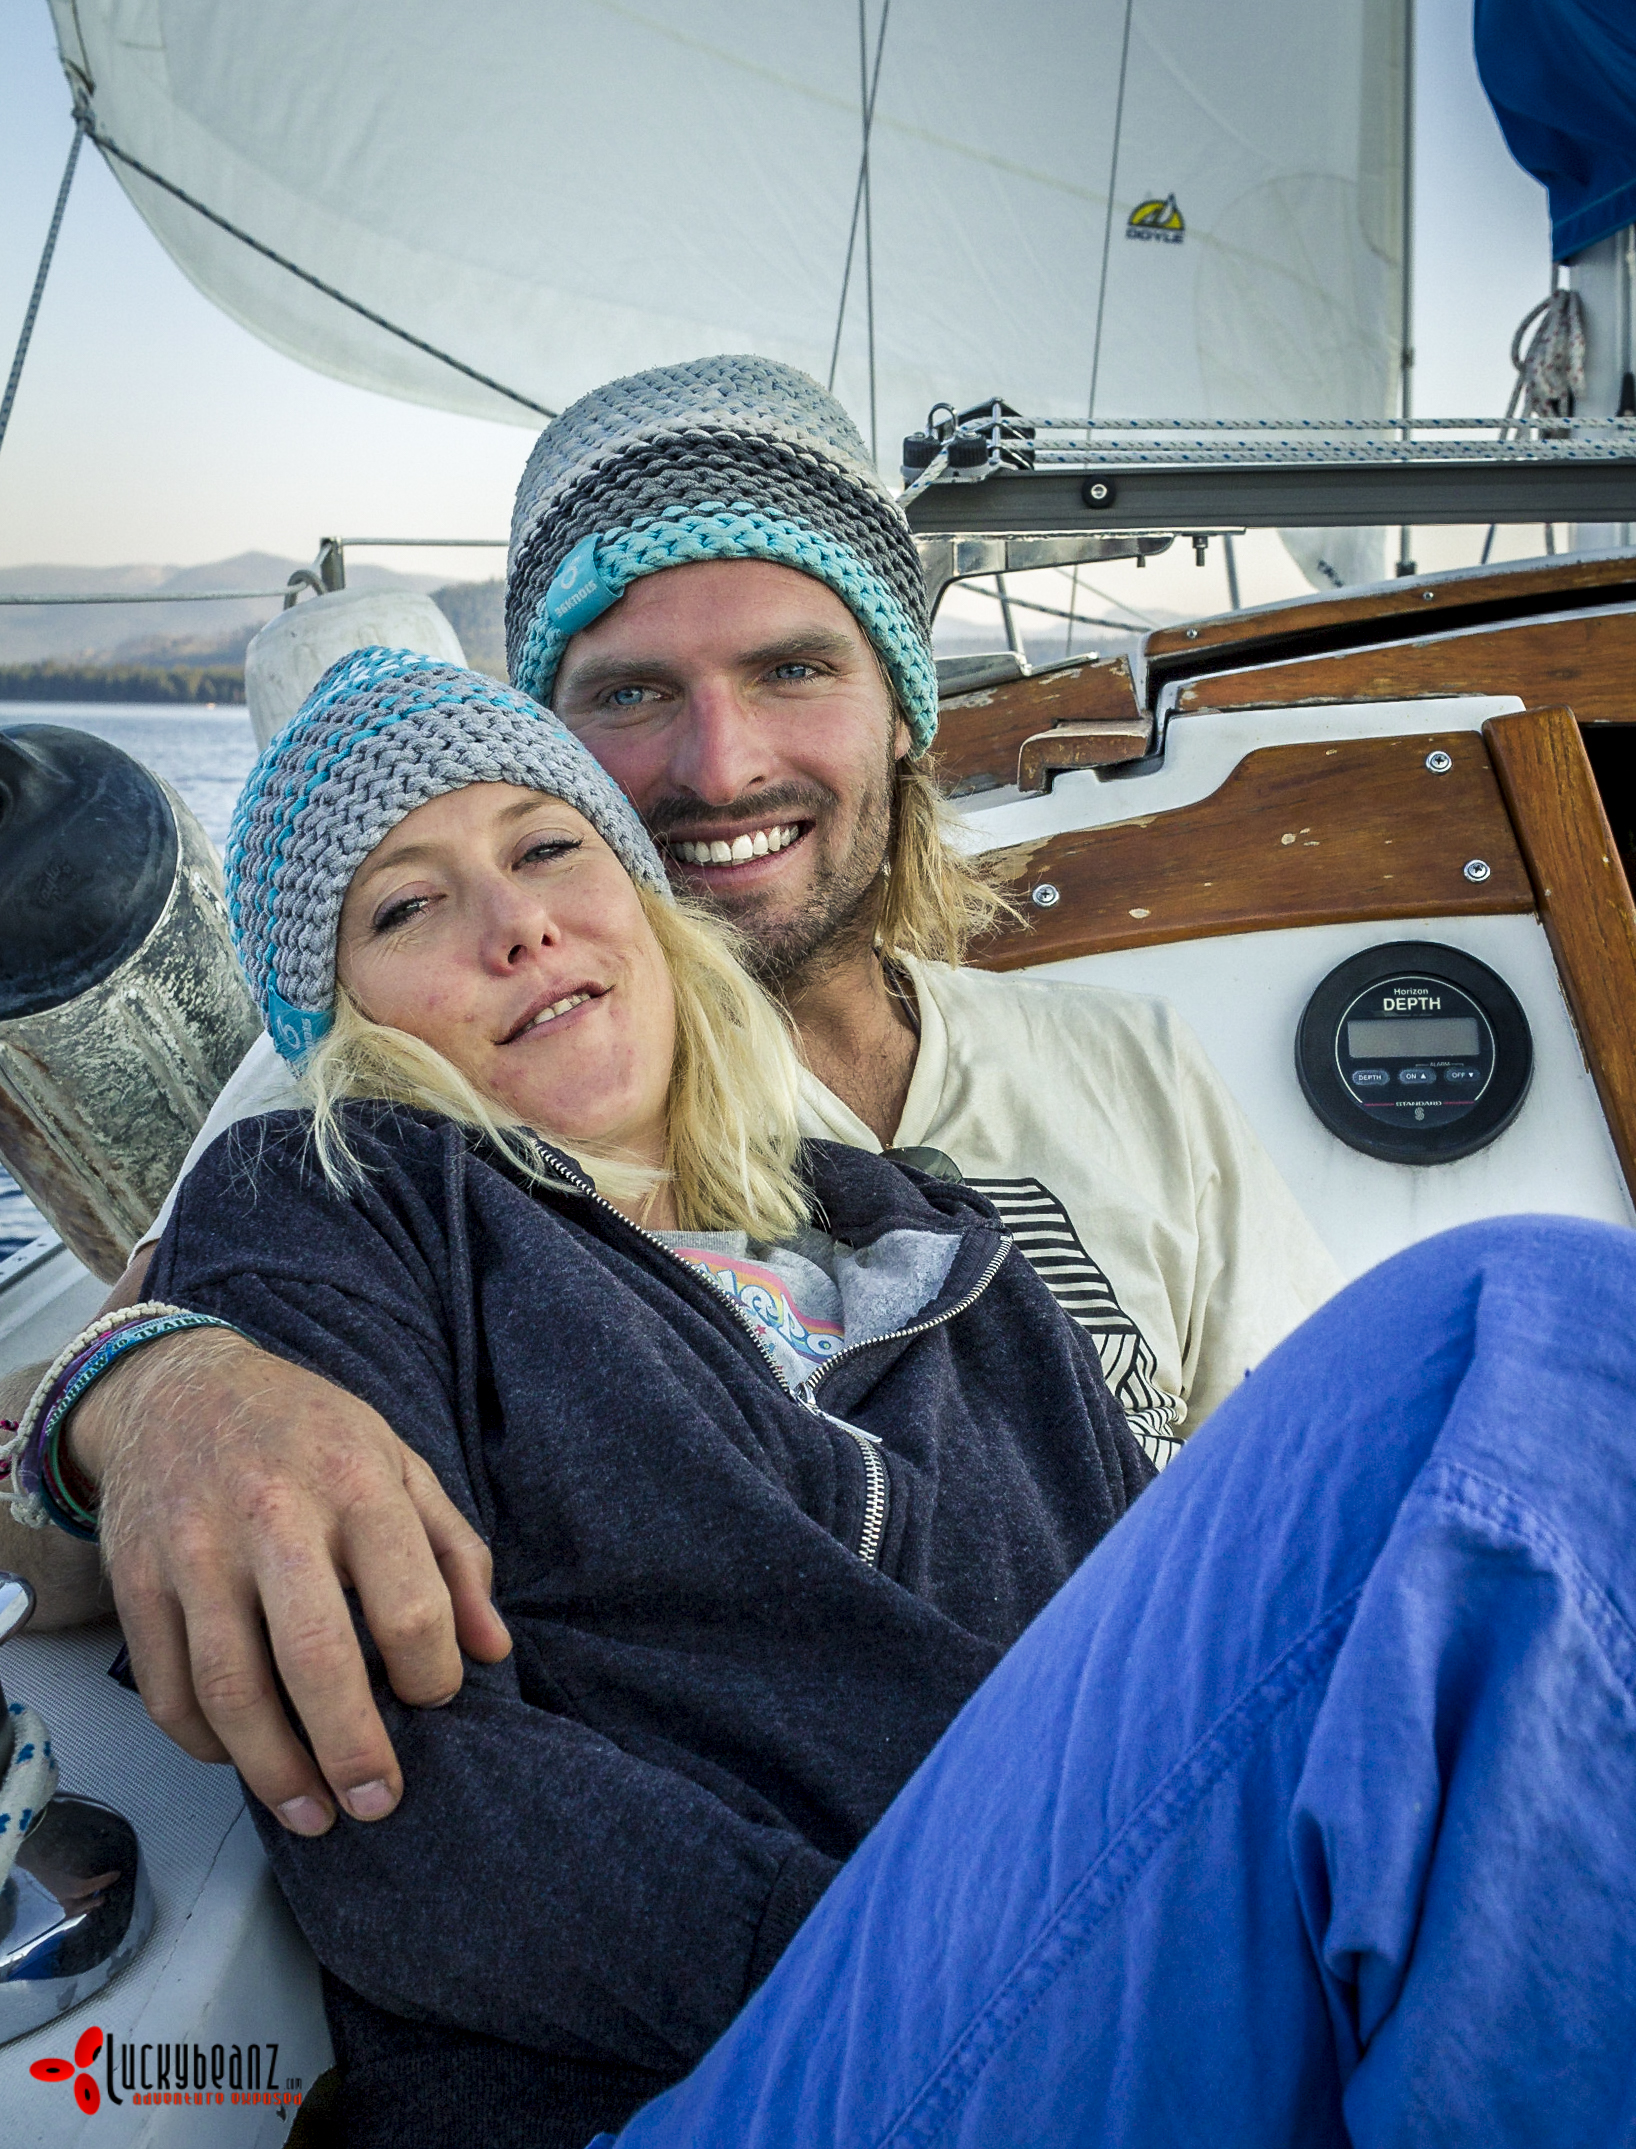 Keeping snug with 36Knots.com beanies